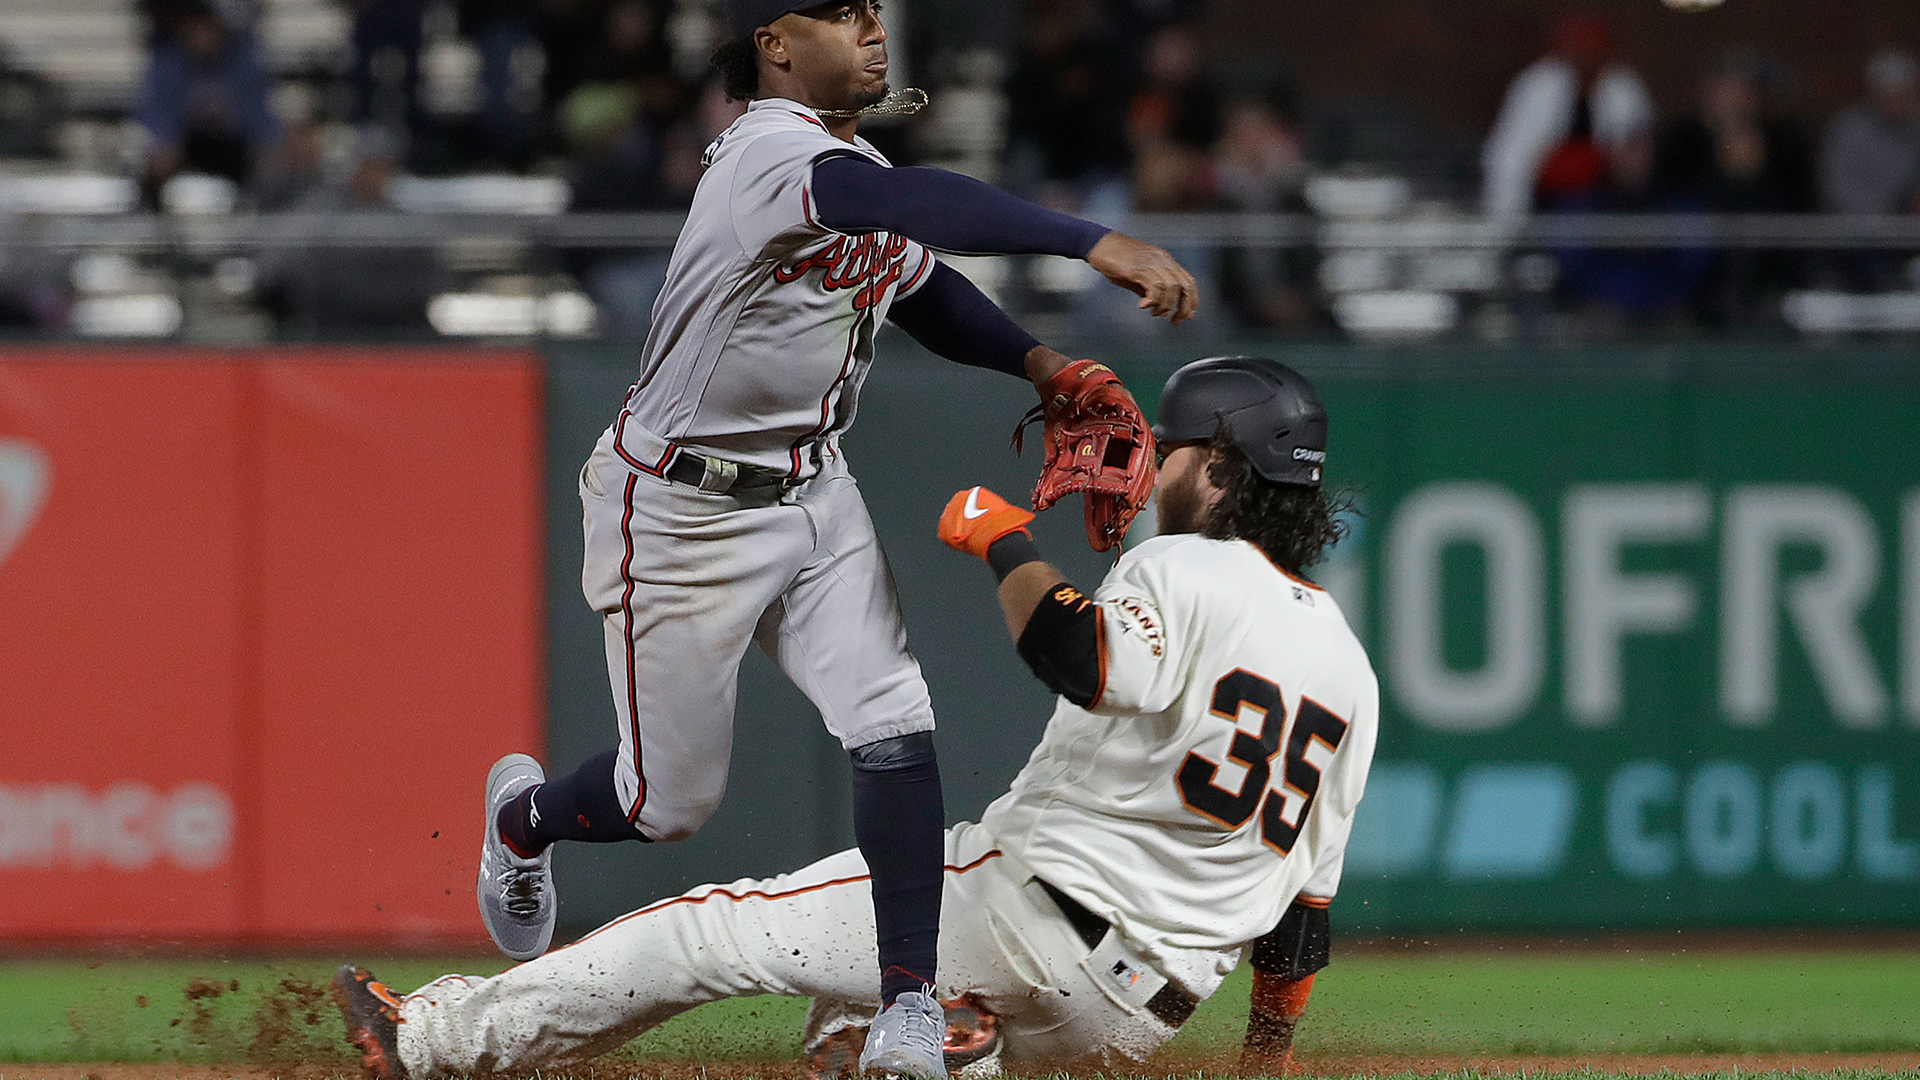 Crawford homers, but Giants' offense stifled in 4-1 loss against Braves